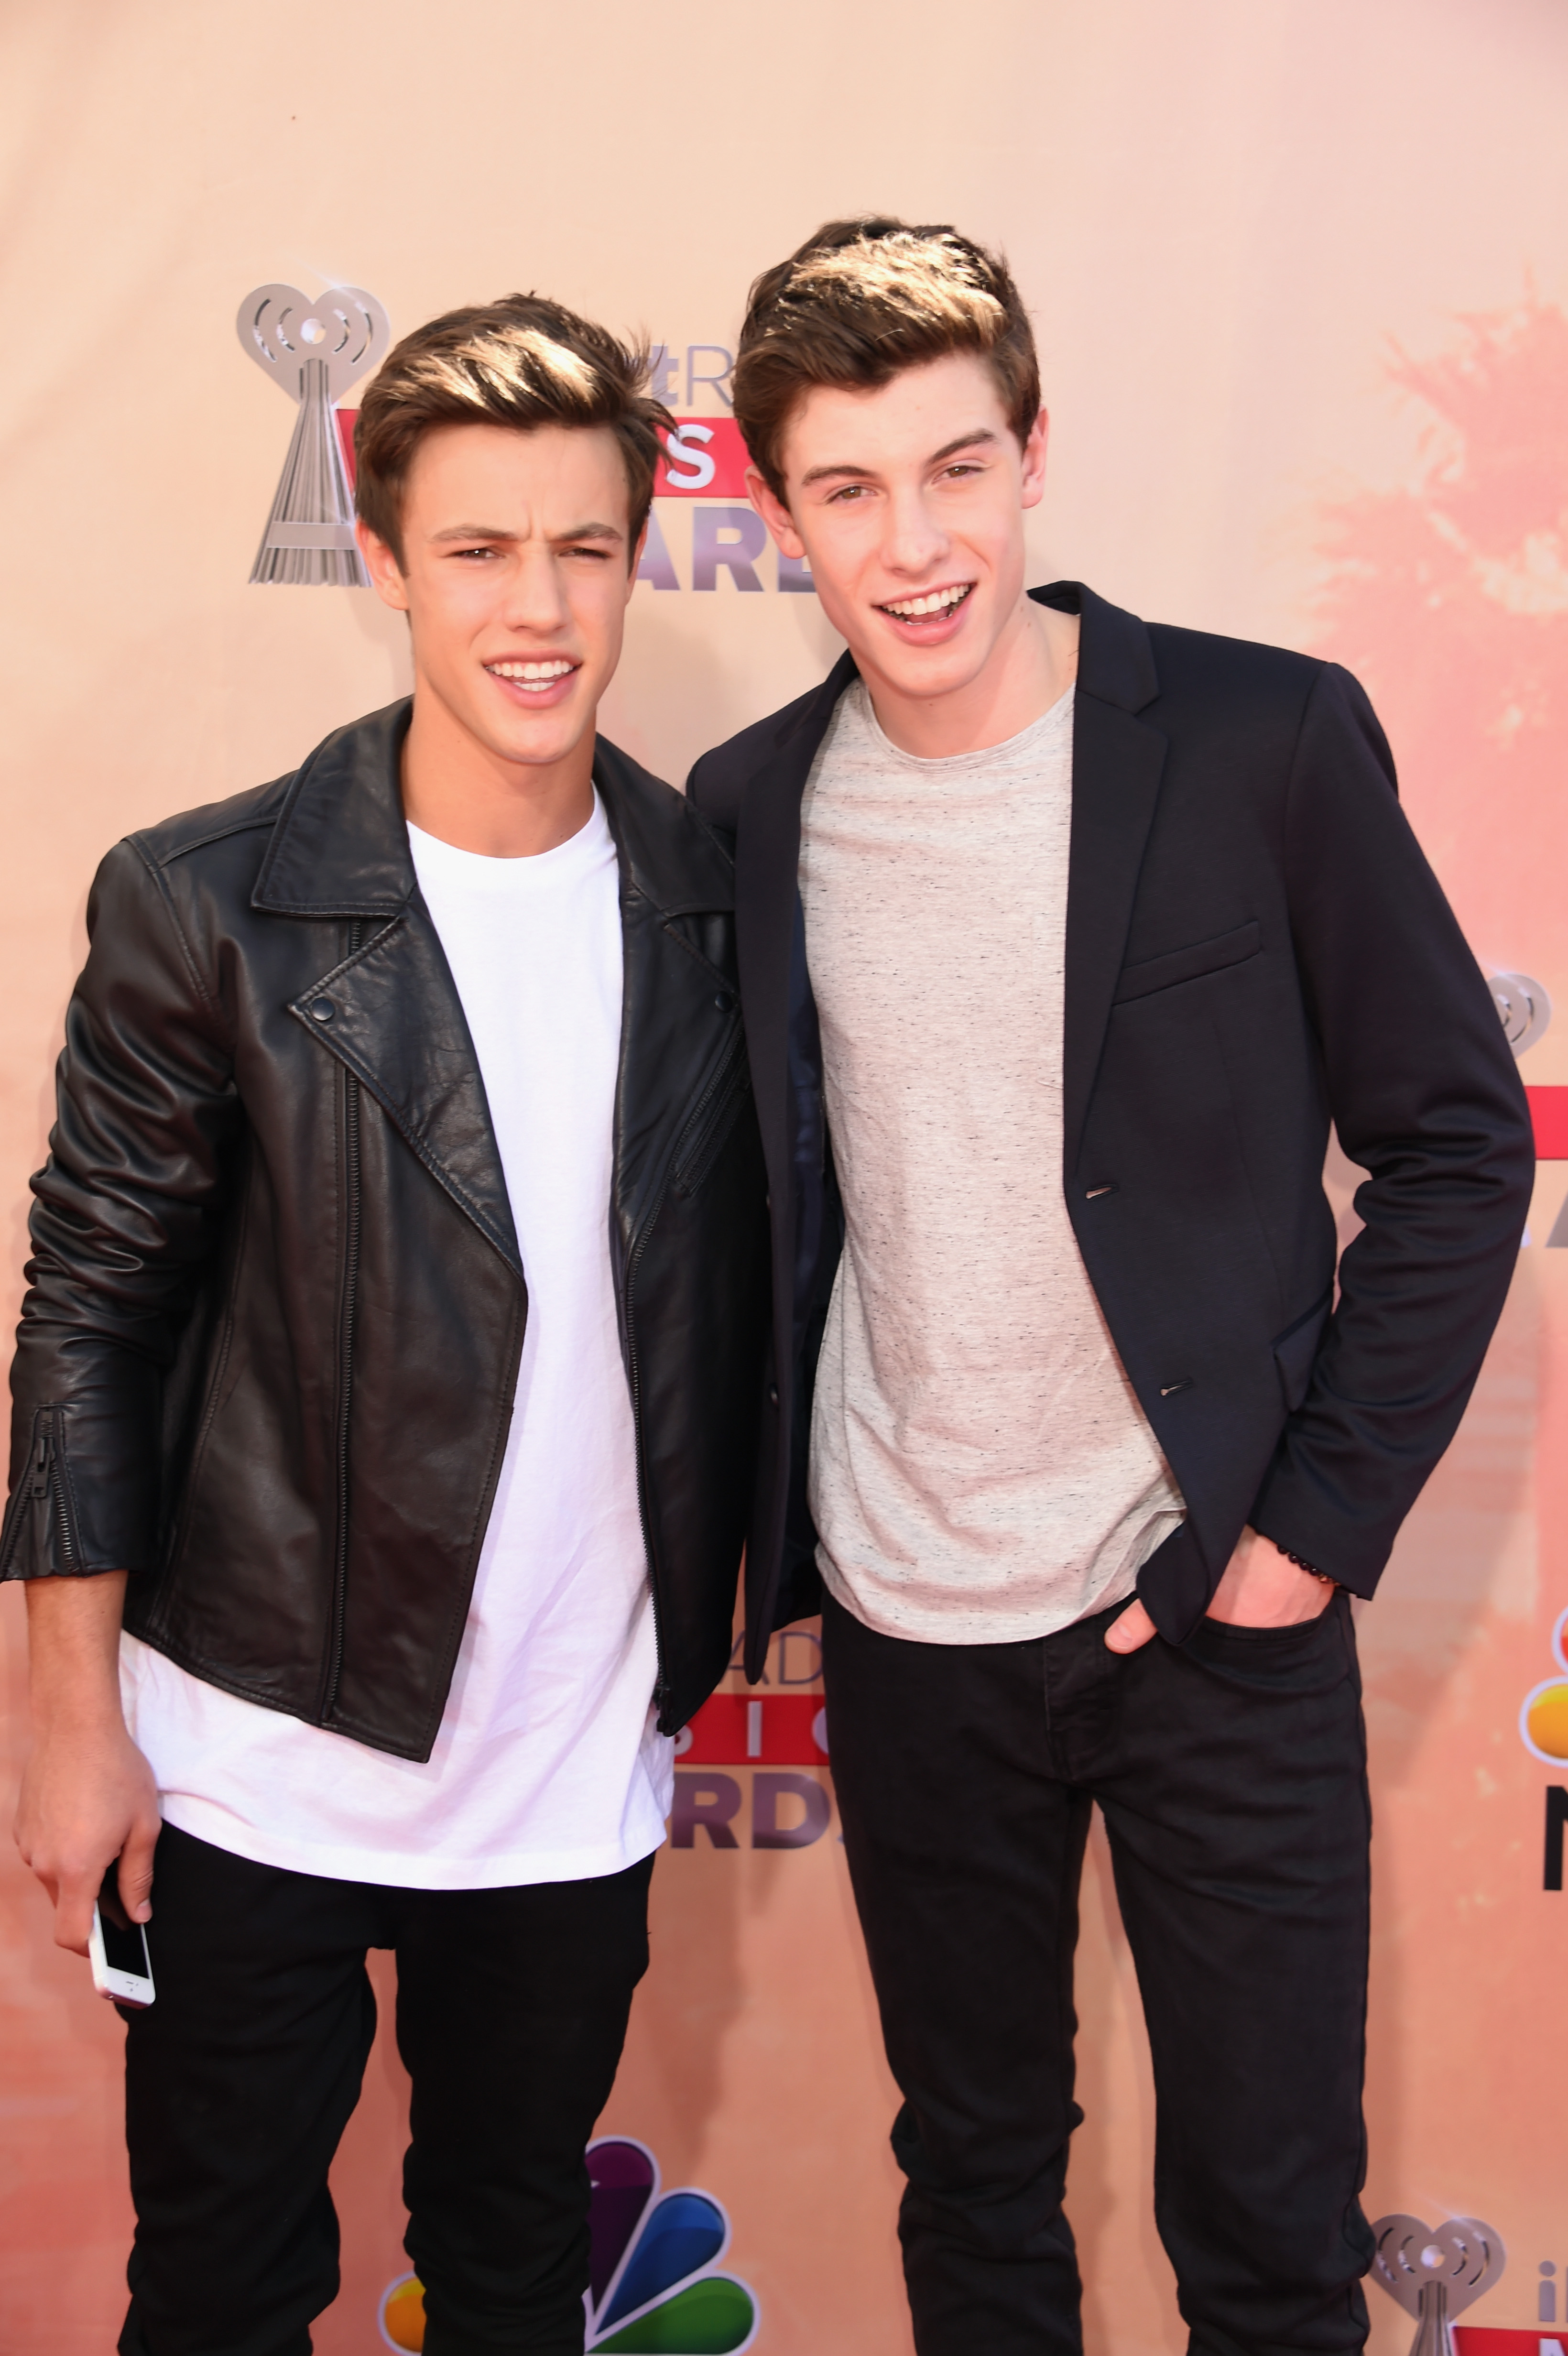 Were cameron dallas and shawn mendes dating